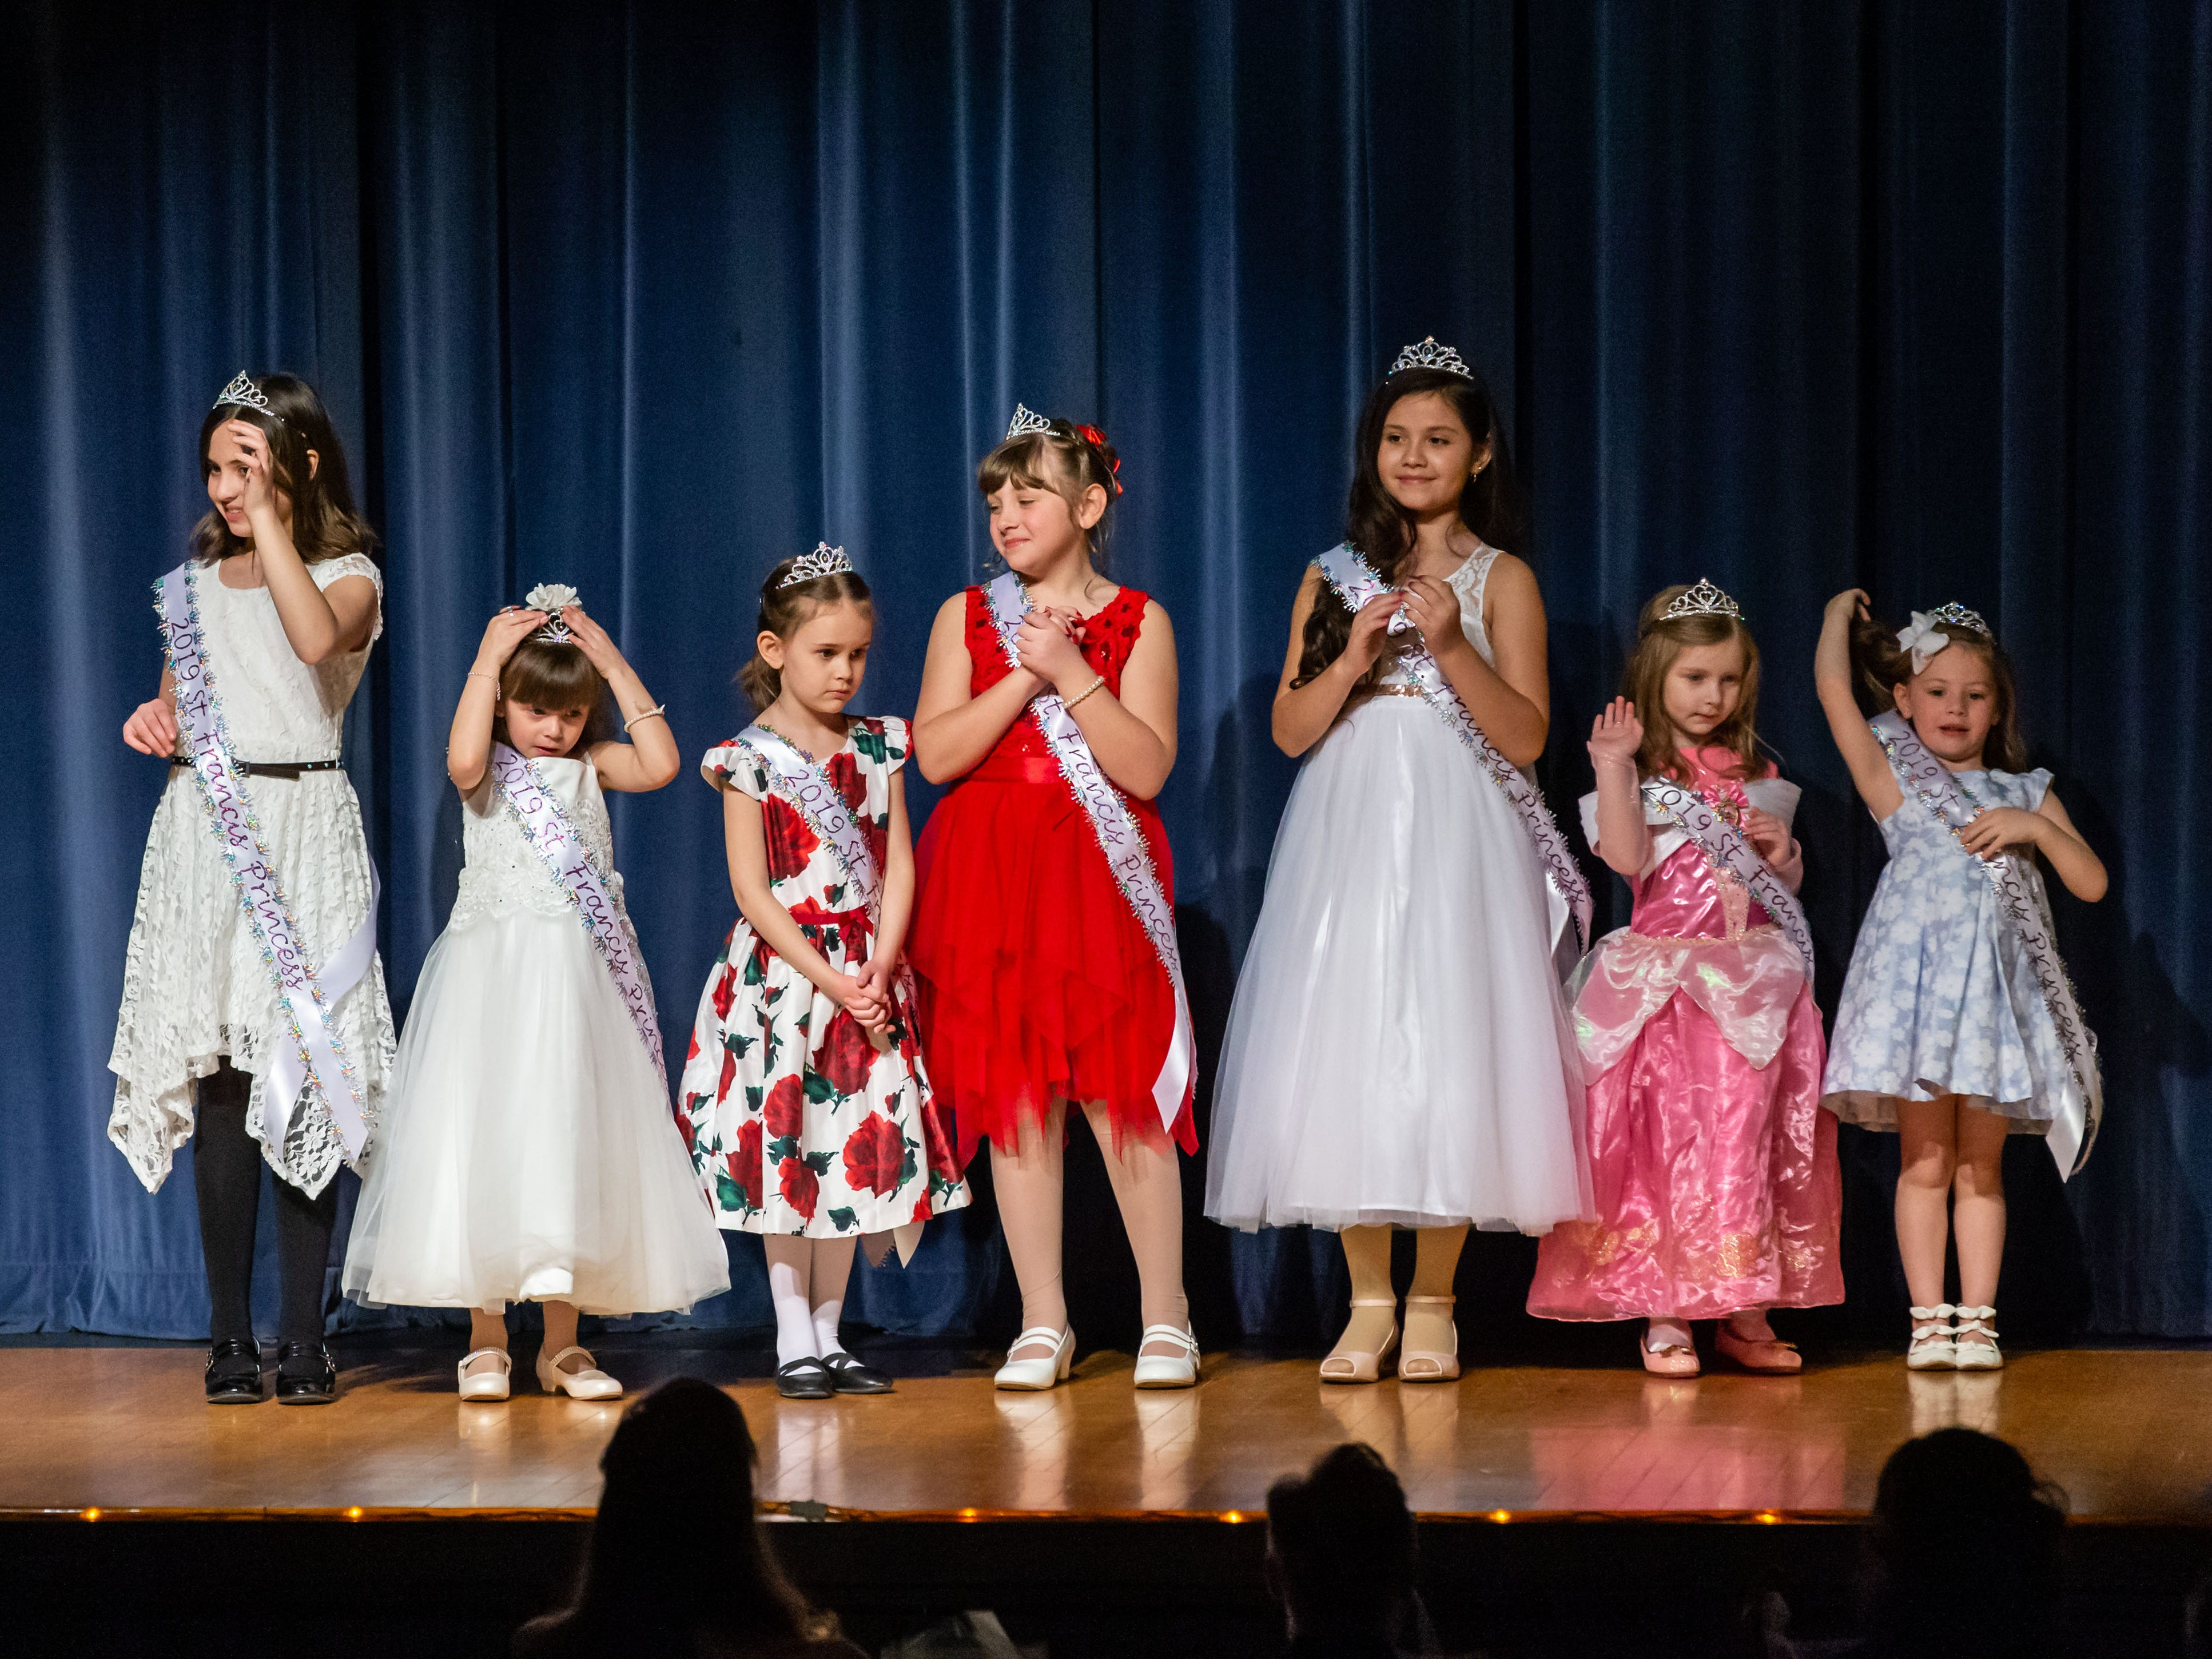 The 2019 St. Francis Princesses are introduced during the 55th annual Miss St. Francis Scholarship Competition at St. Thomas More High School on Saturday, Feb. 2, 2019. Miss St. Francis wins a $3,000.00 scholarship to the college of her choice, an official local crown, flowers, scepter, and many other prizes.  She competes in the Miss Wisconsin pageant in Oshkosh in June and spends a year representing her title at local events.